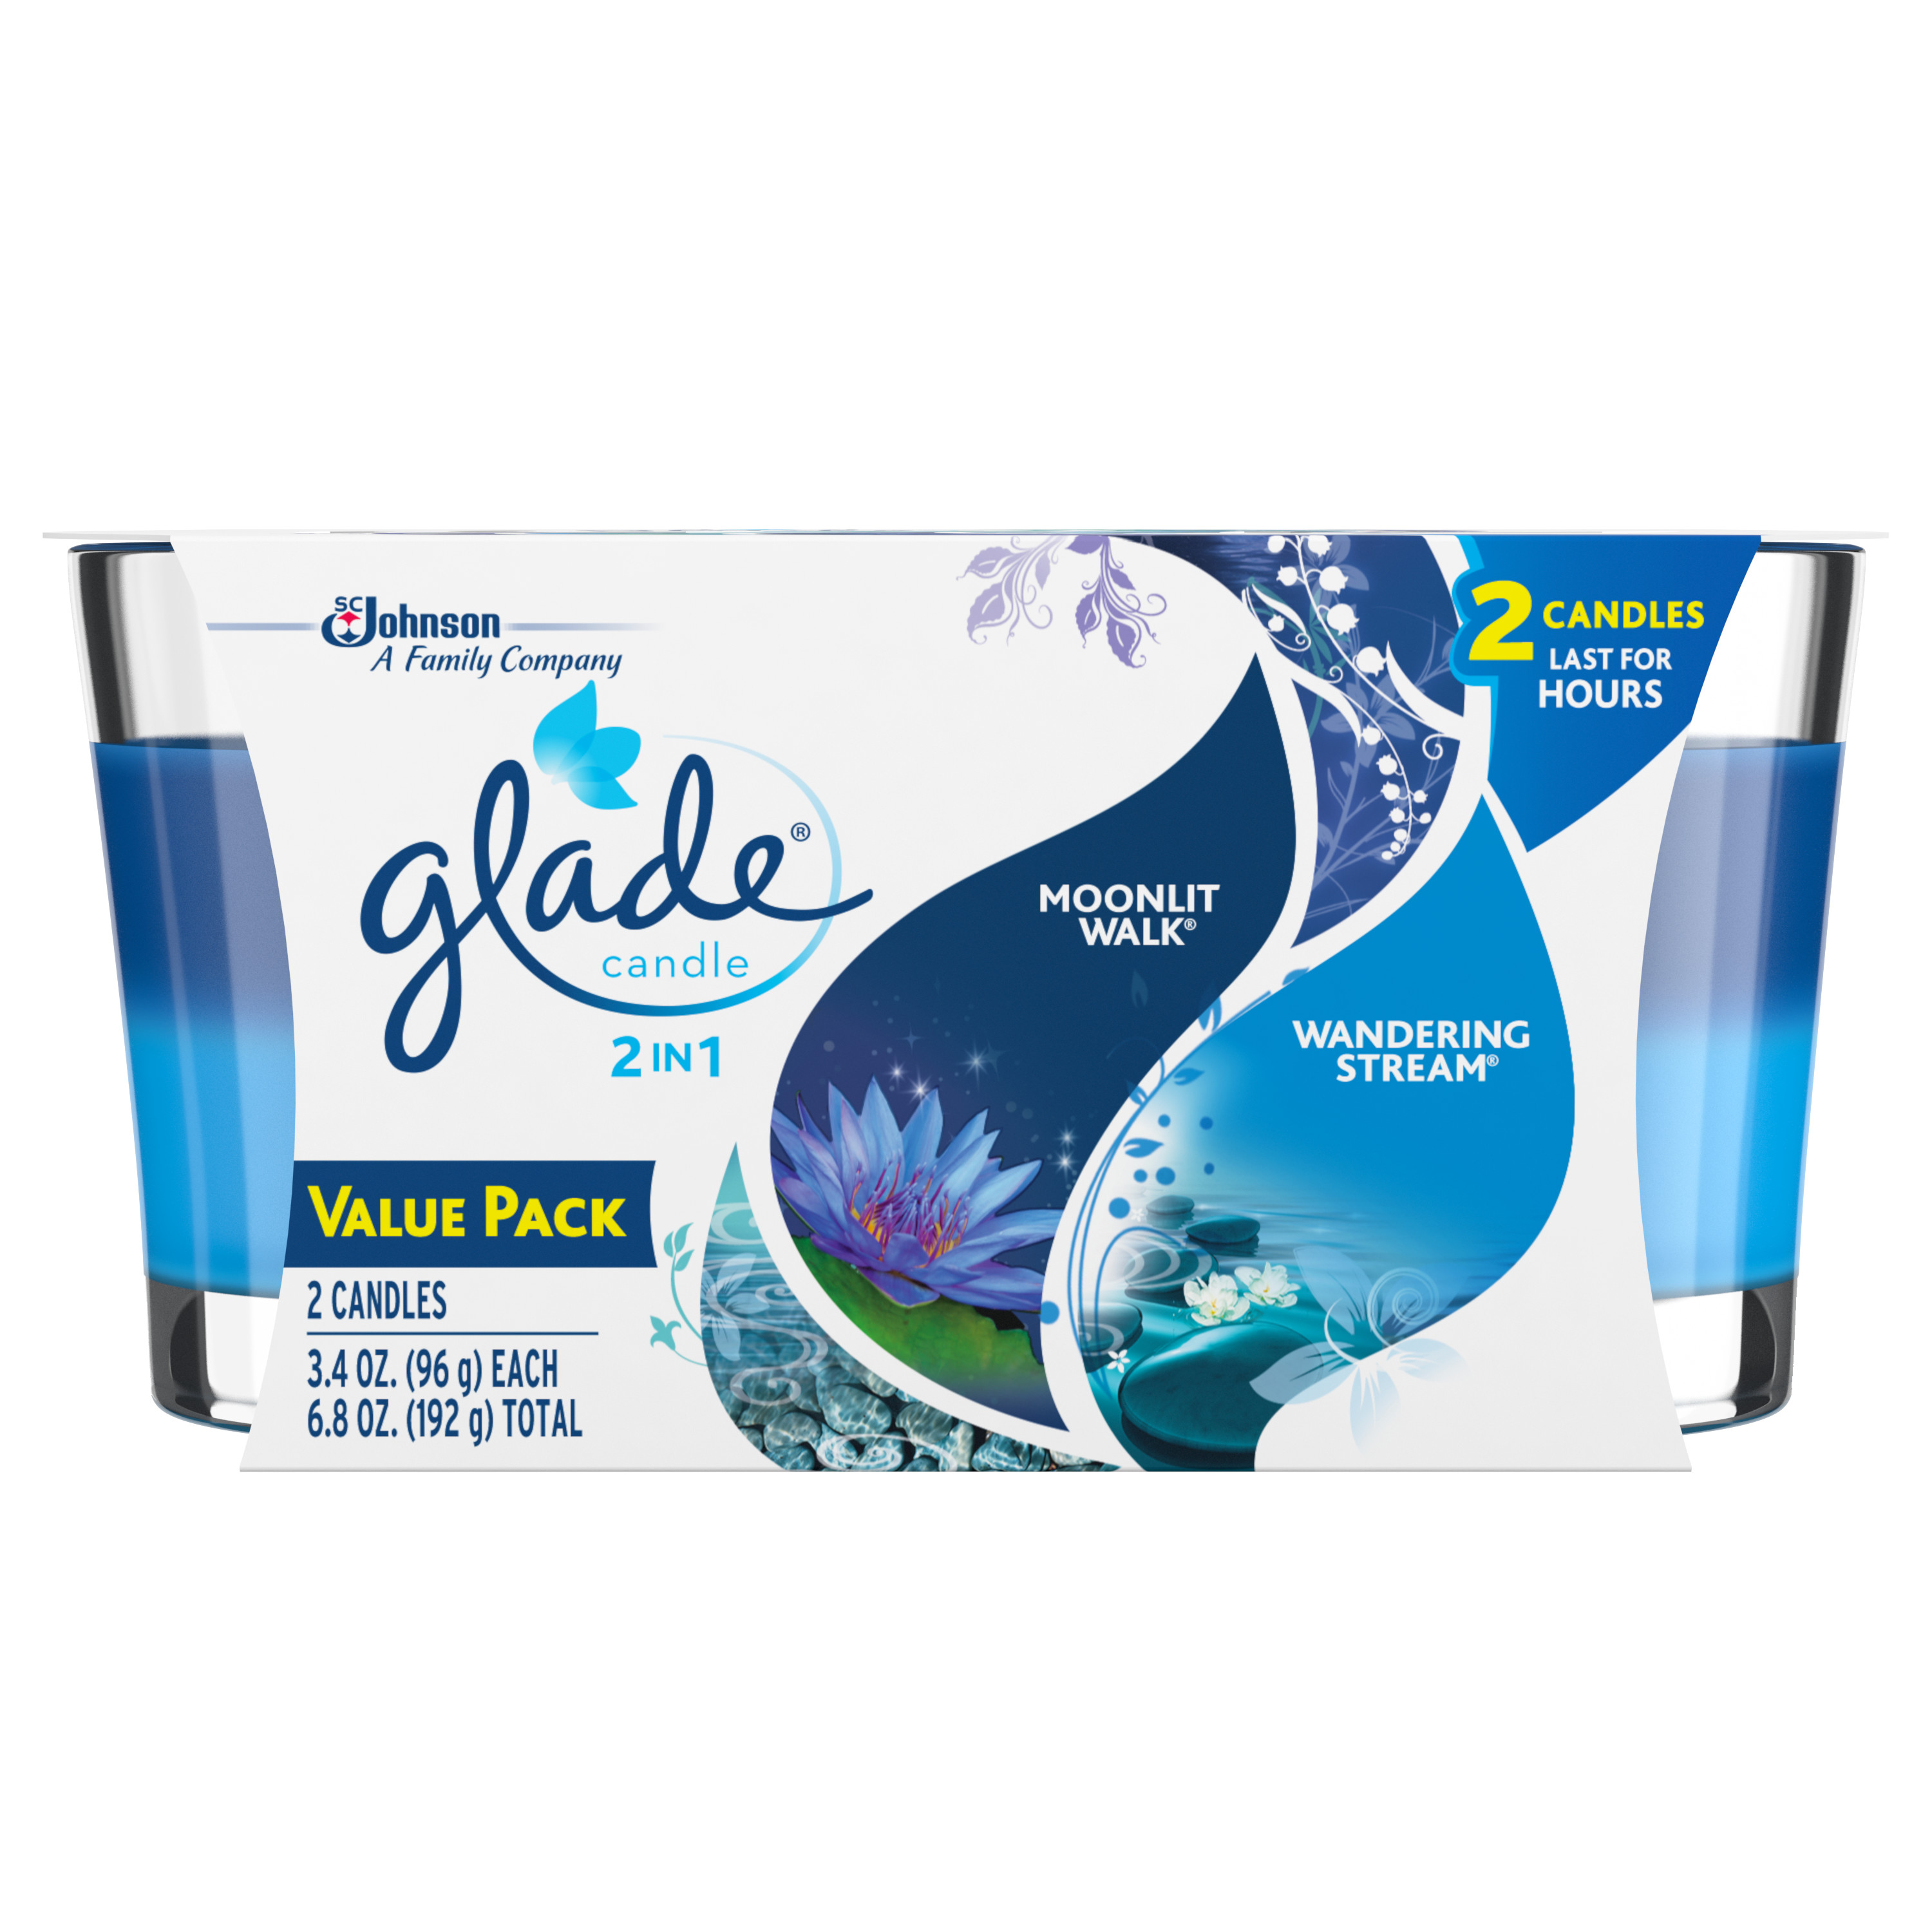 Glade Candle, 2 in 1: Moonlit Walk & Wandering Stream, 3.4 oz. (Pack of 2)